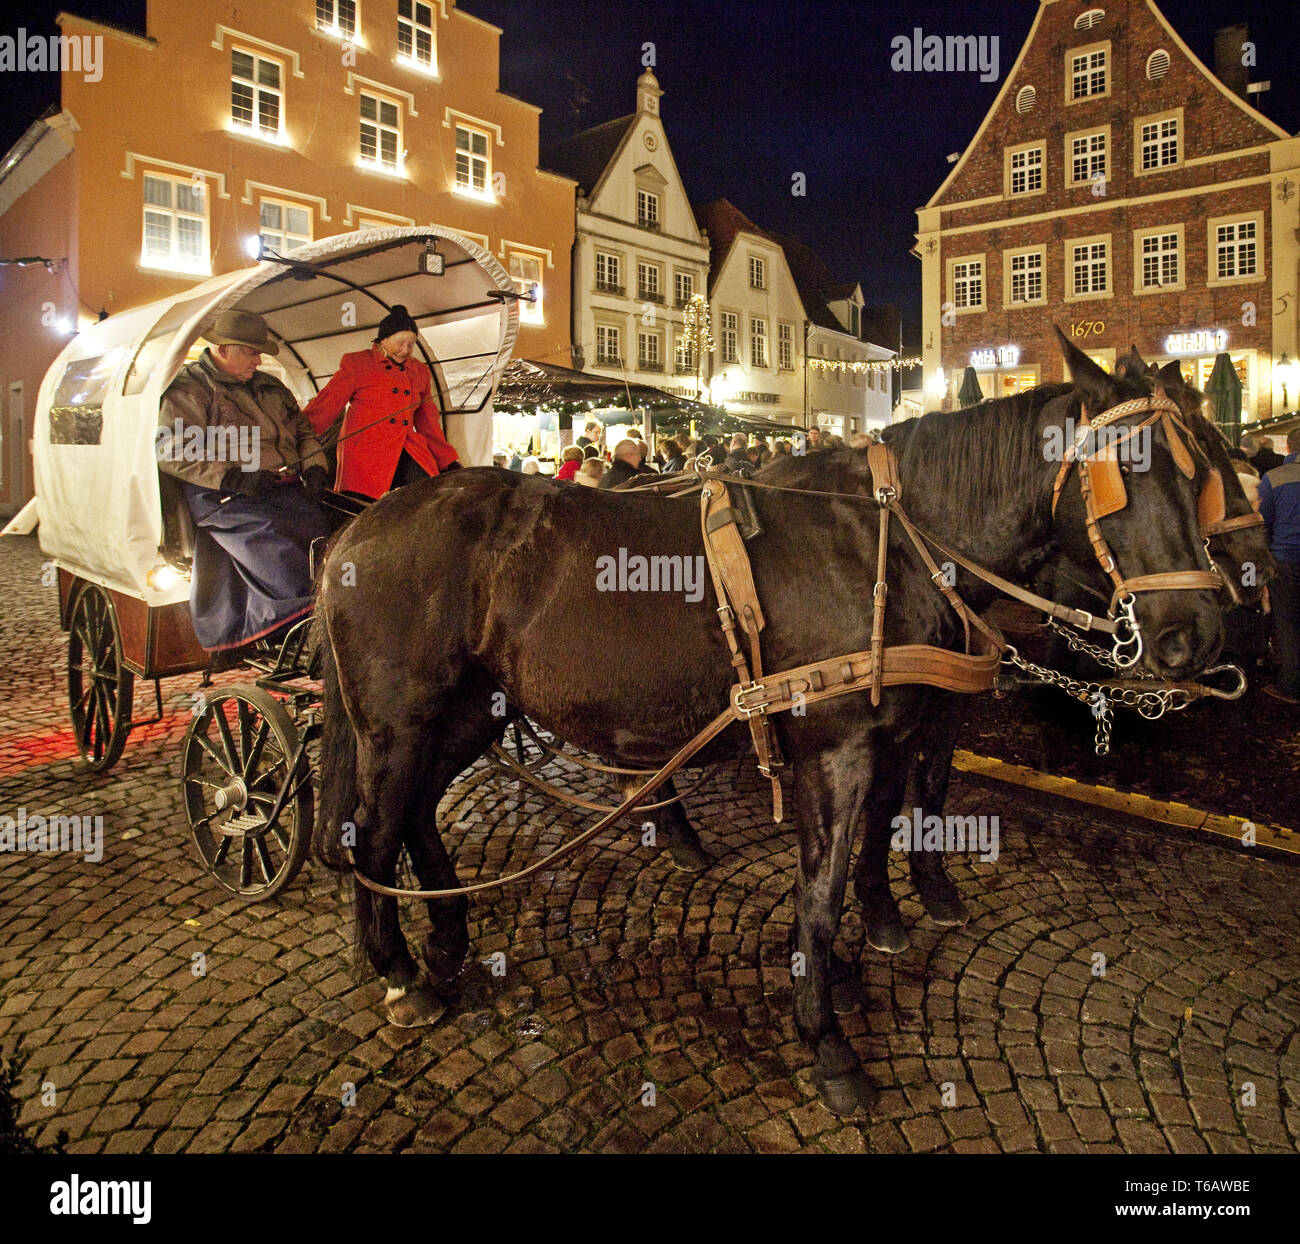 Christmas market with hackney cab, Warendorf, Muensterland,North Rhine-Westphalia, Germany - Stock Image